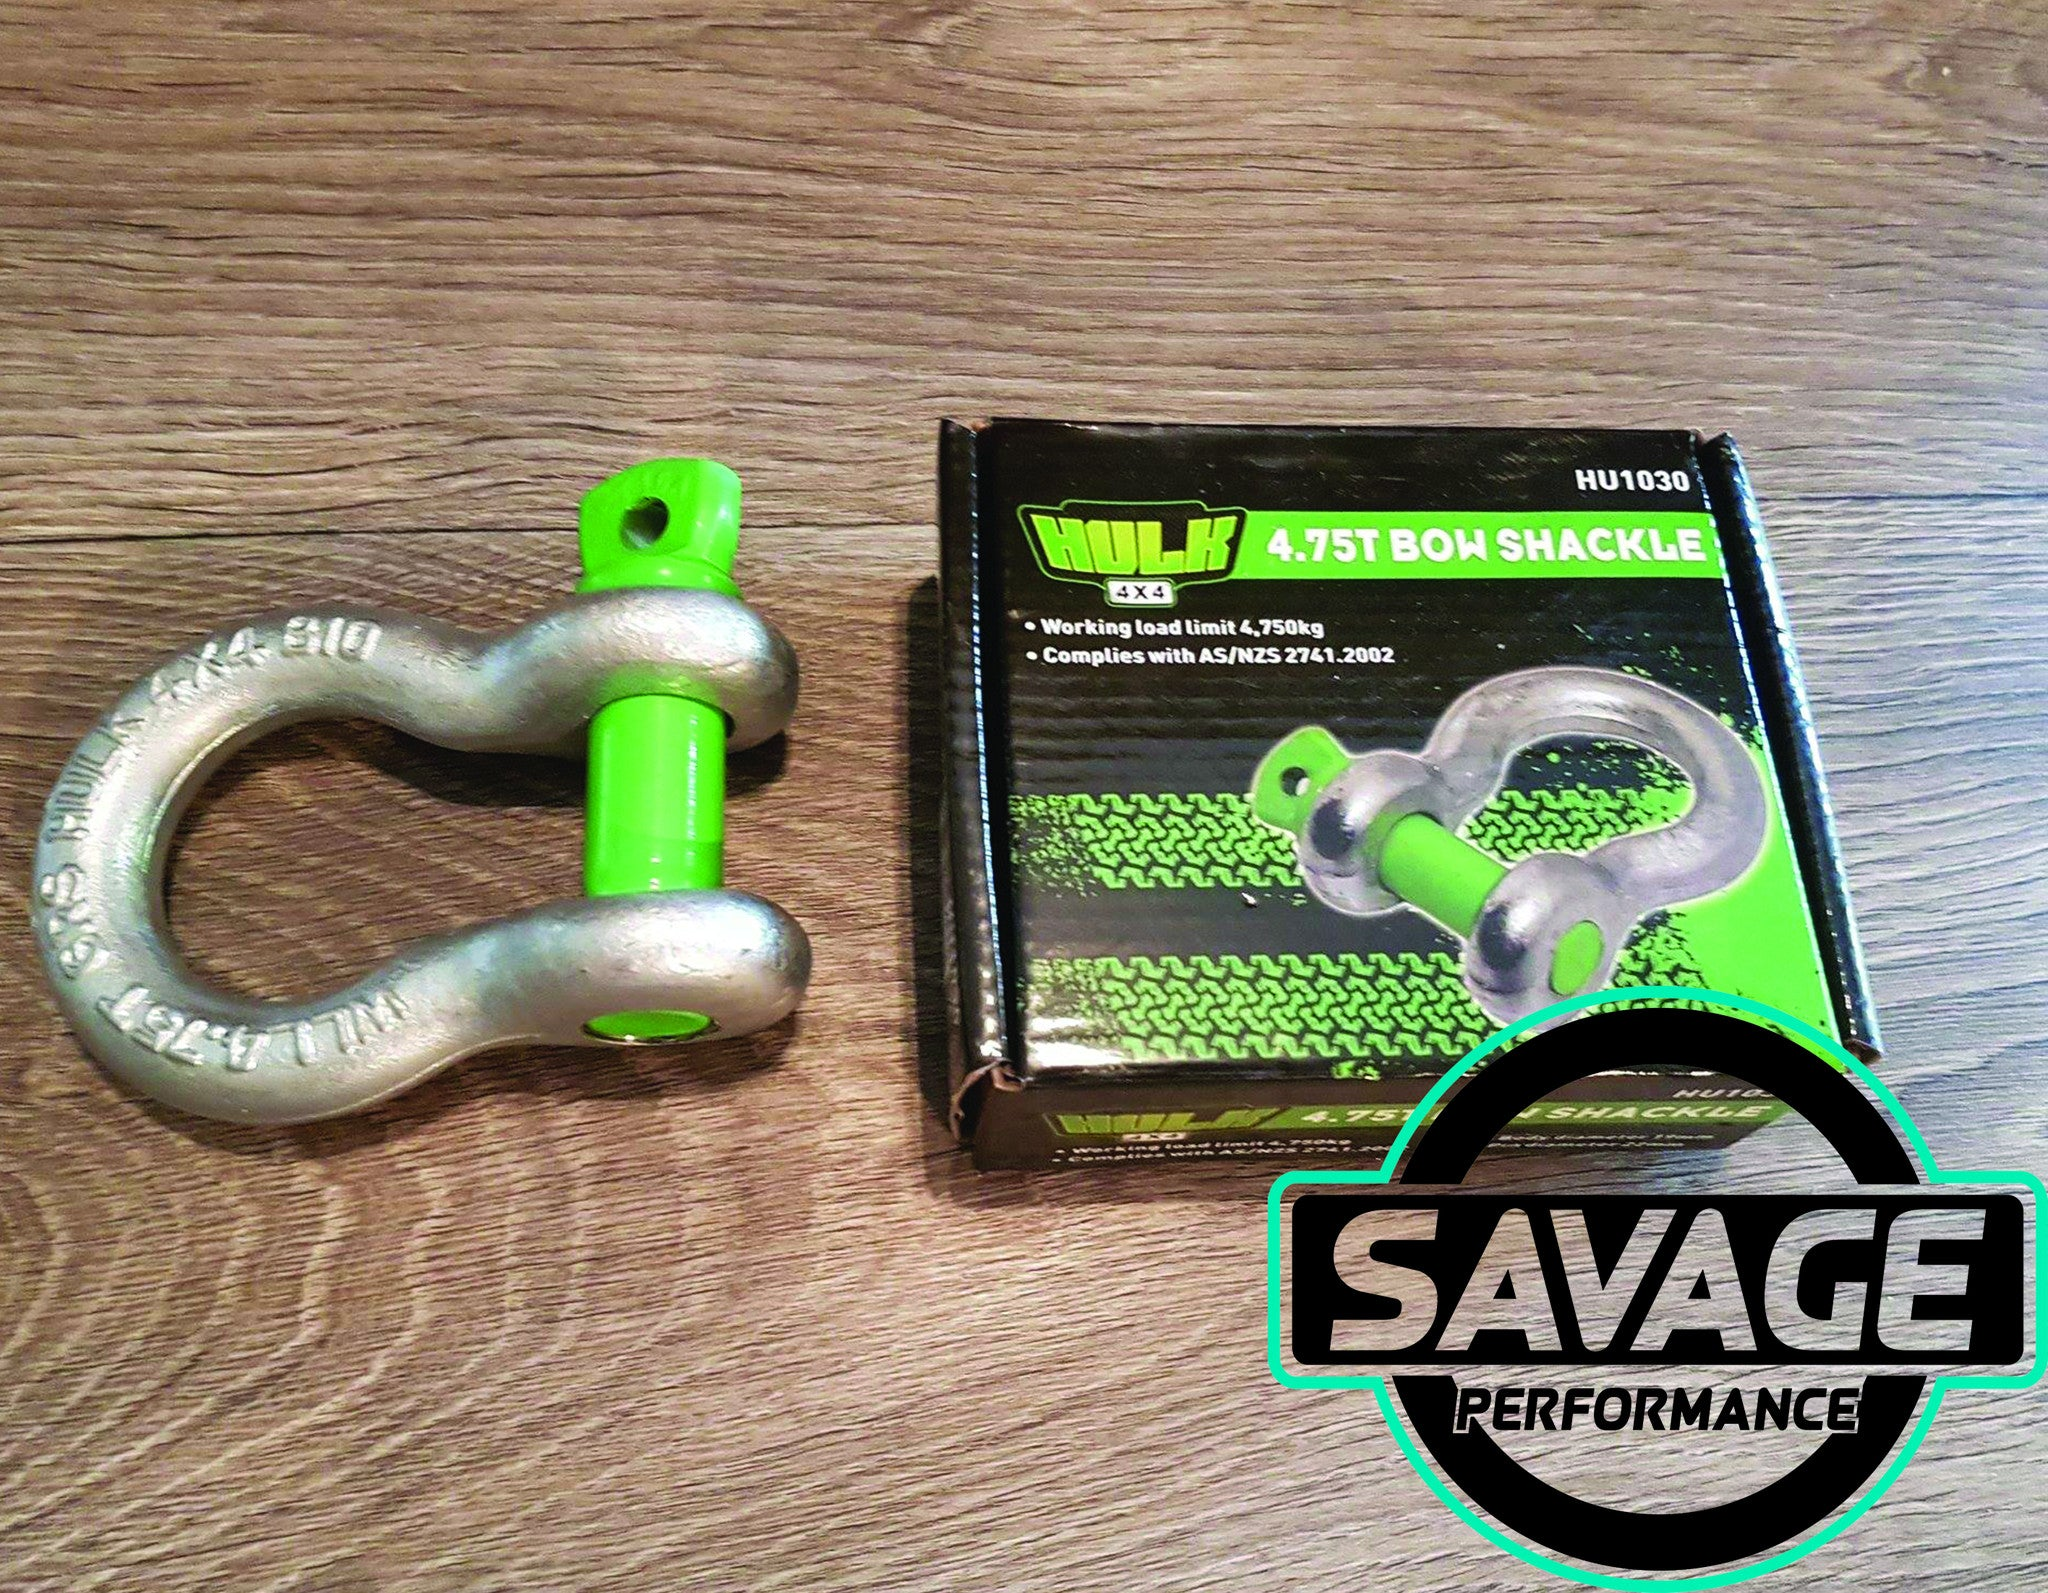 Hulk 4x4 4.75T 4750kg Bow Shackle *Savage Performance*